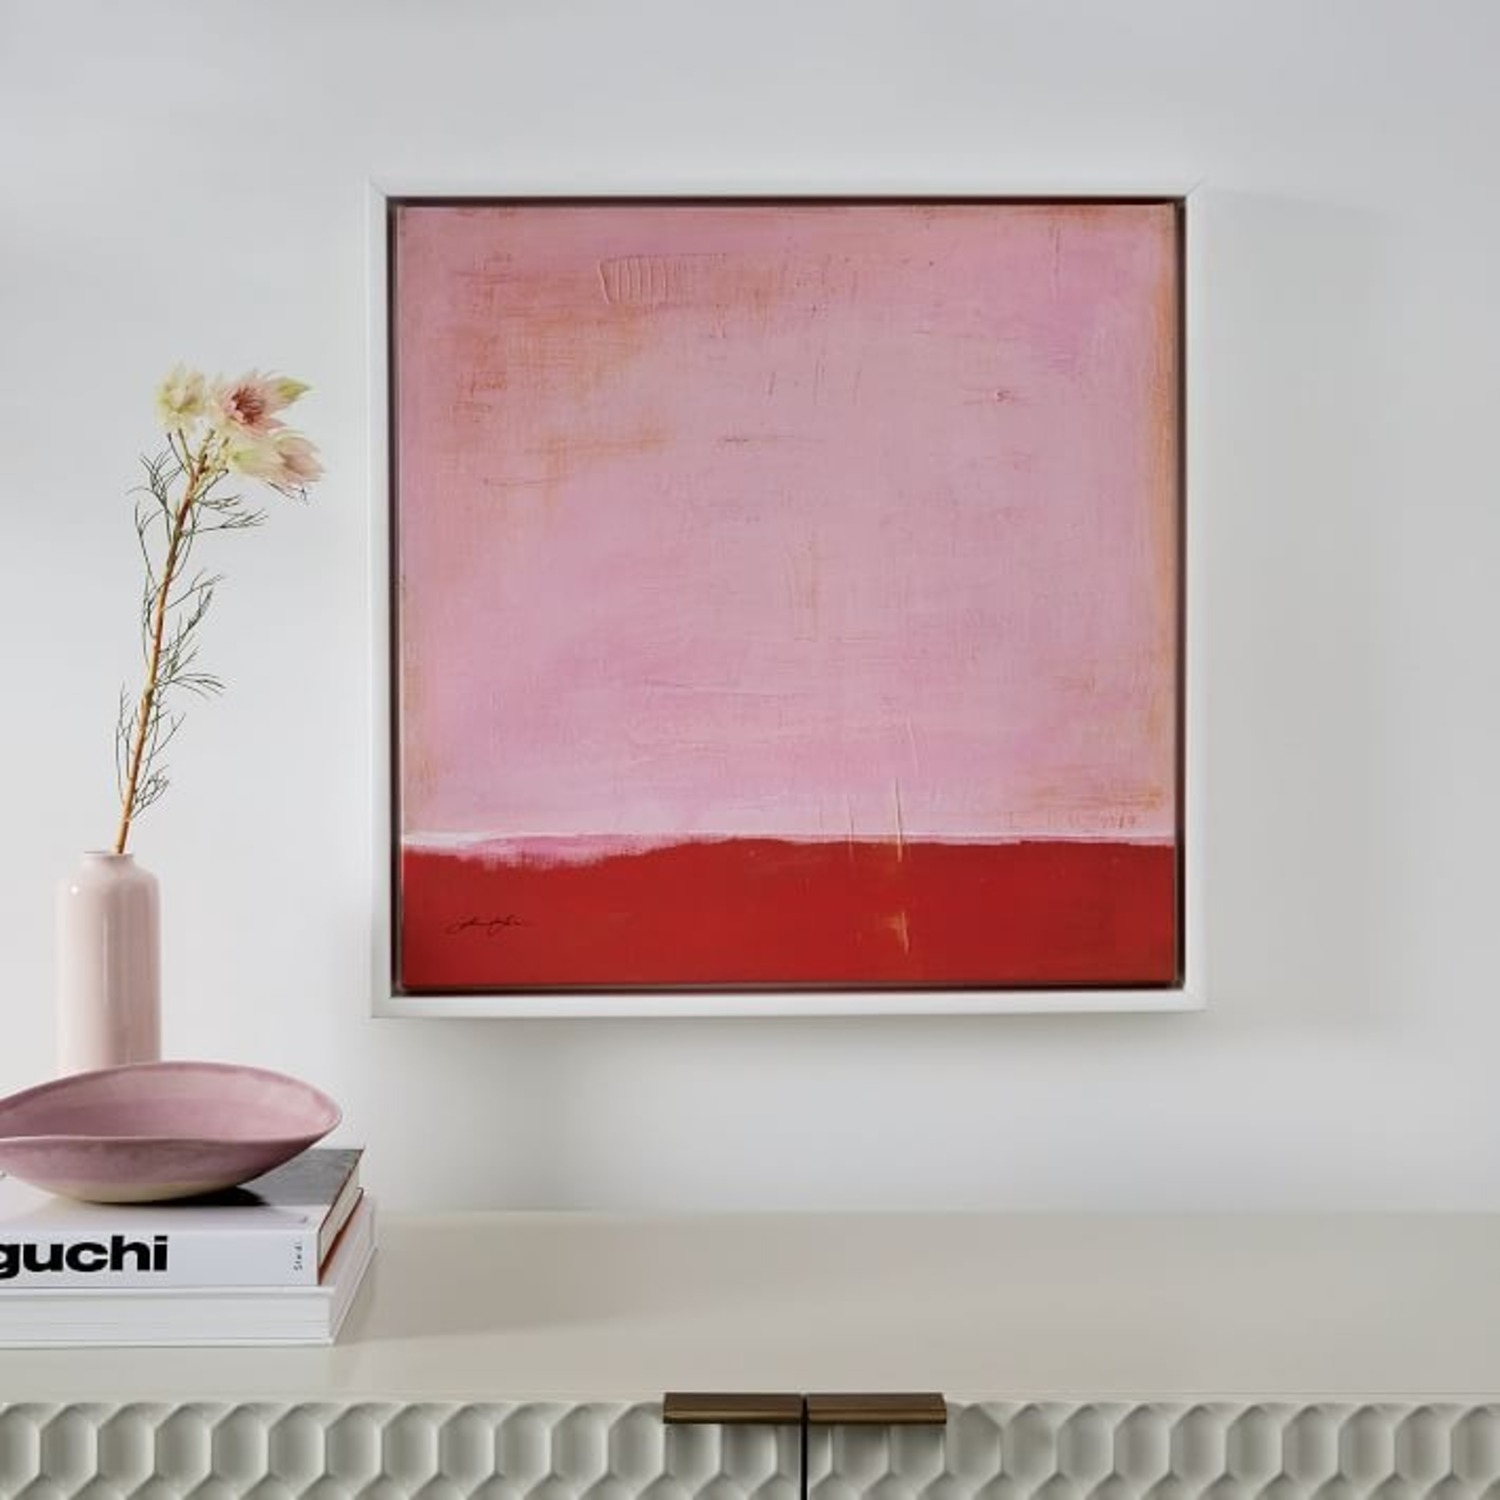 West Elm Red on Pink by Laura Gunn 24 x 24 - image-1